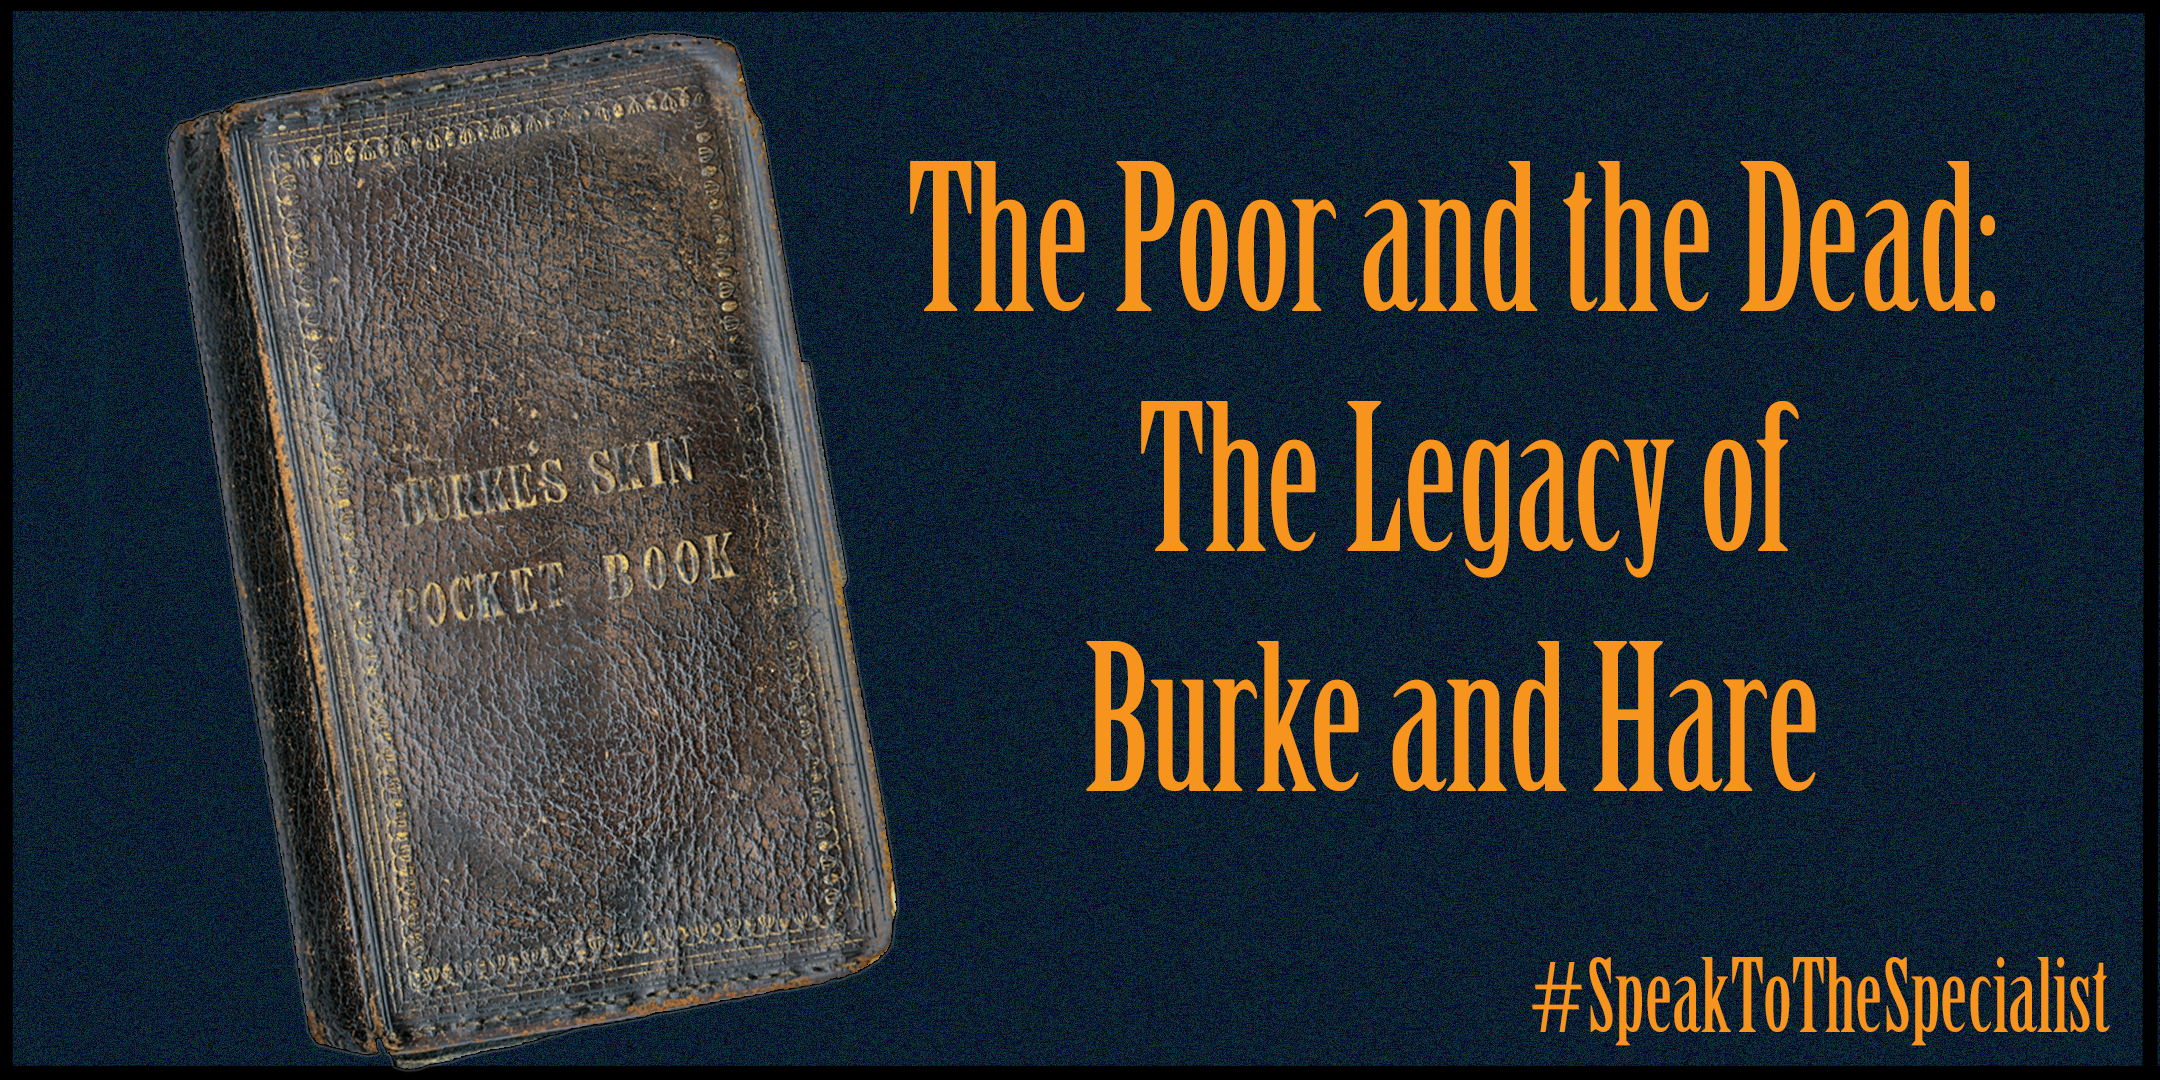 The Poor and the Dead: The Legacy of Burke and Hare